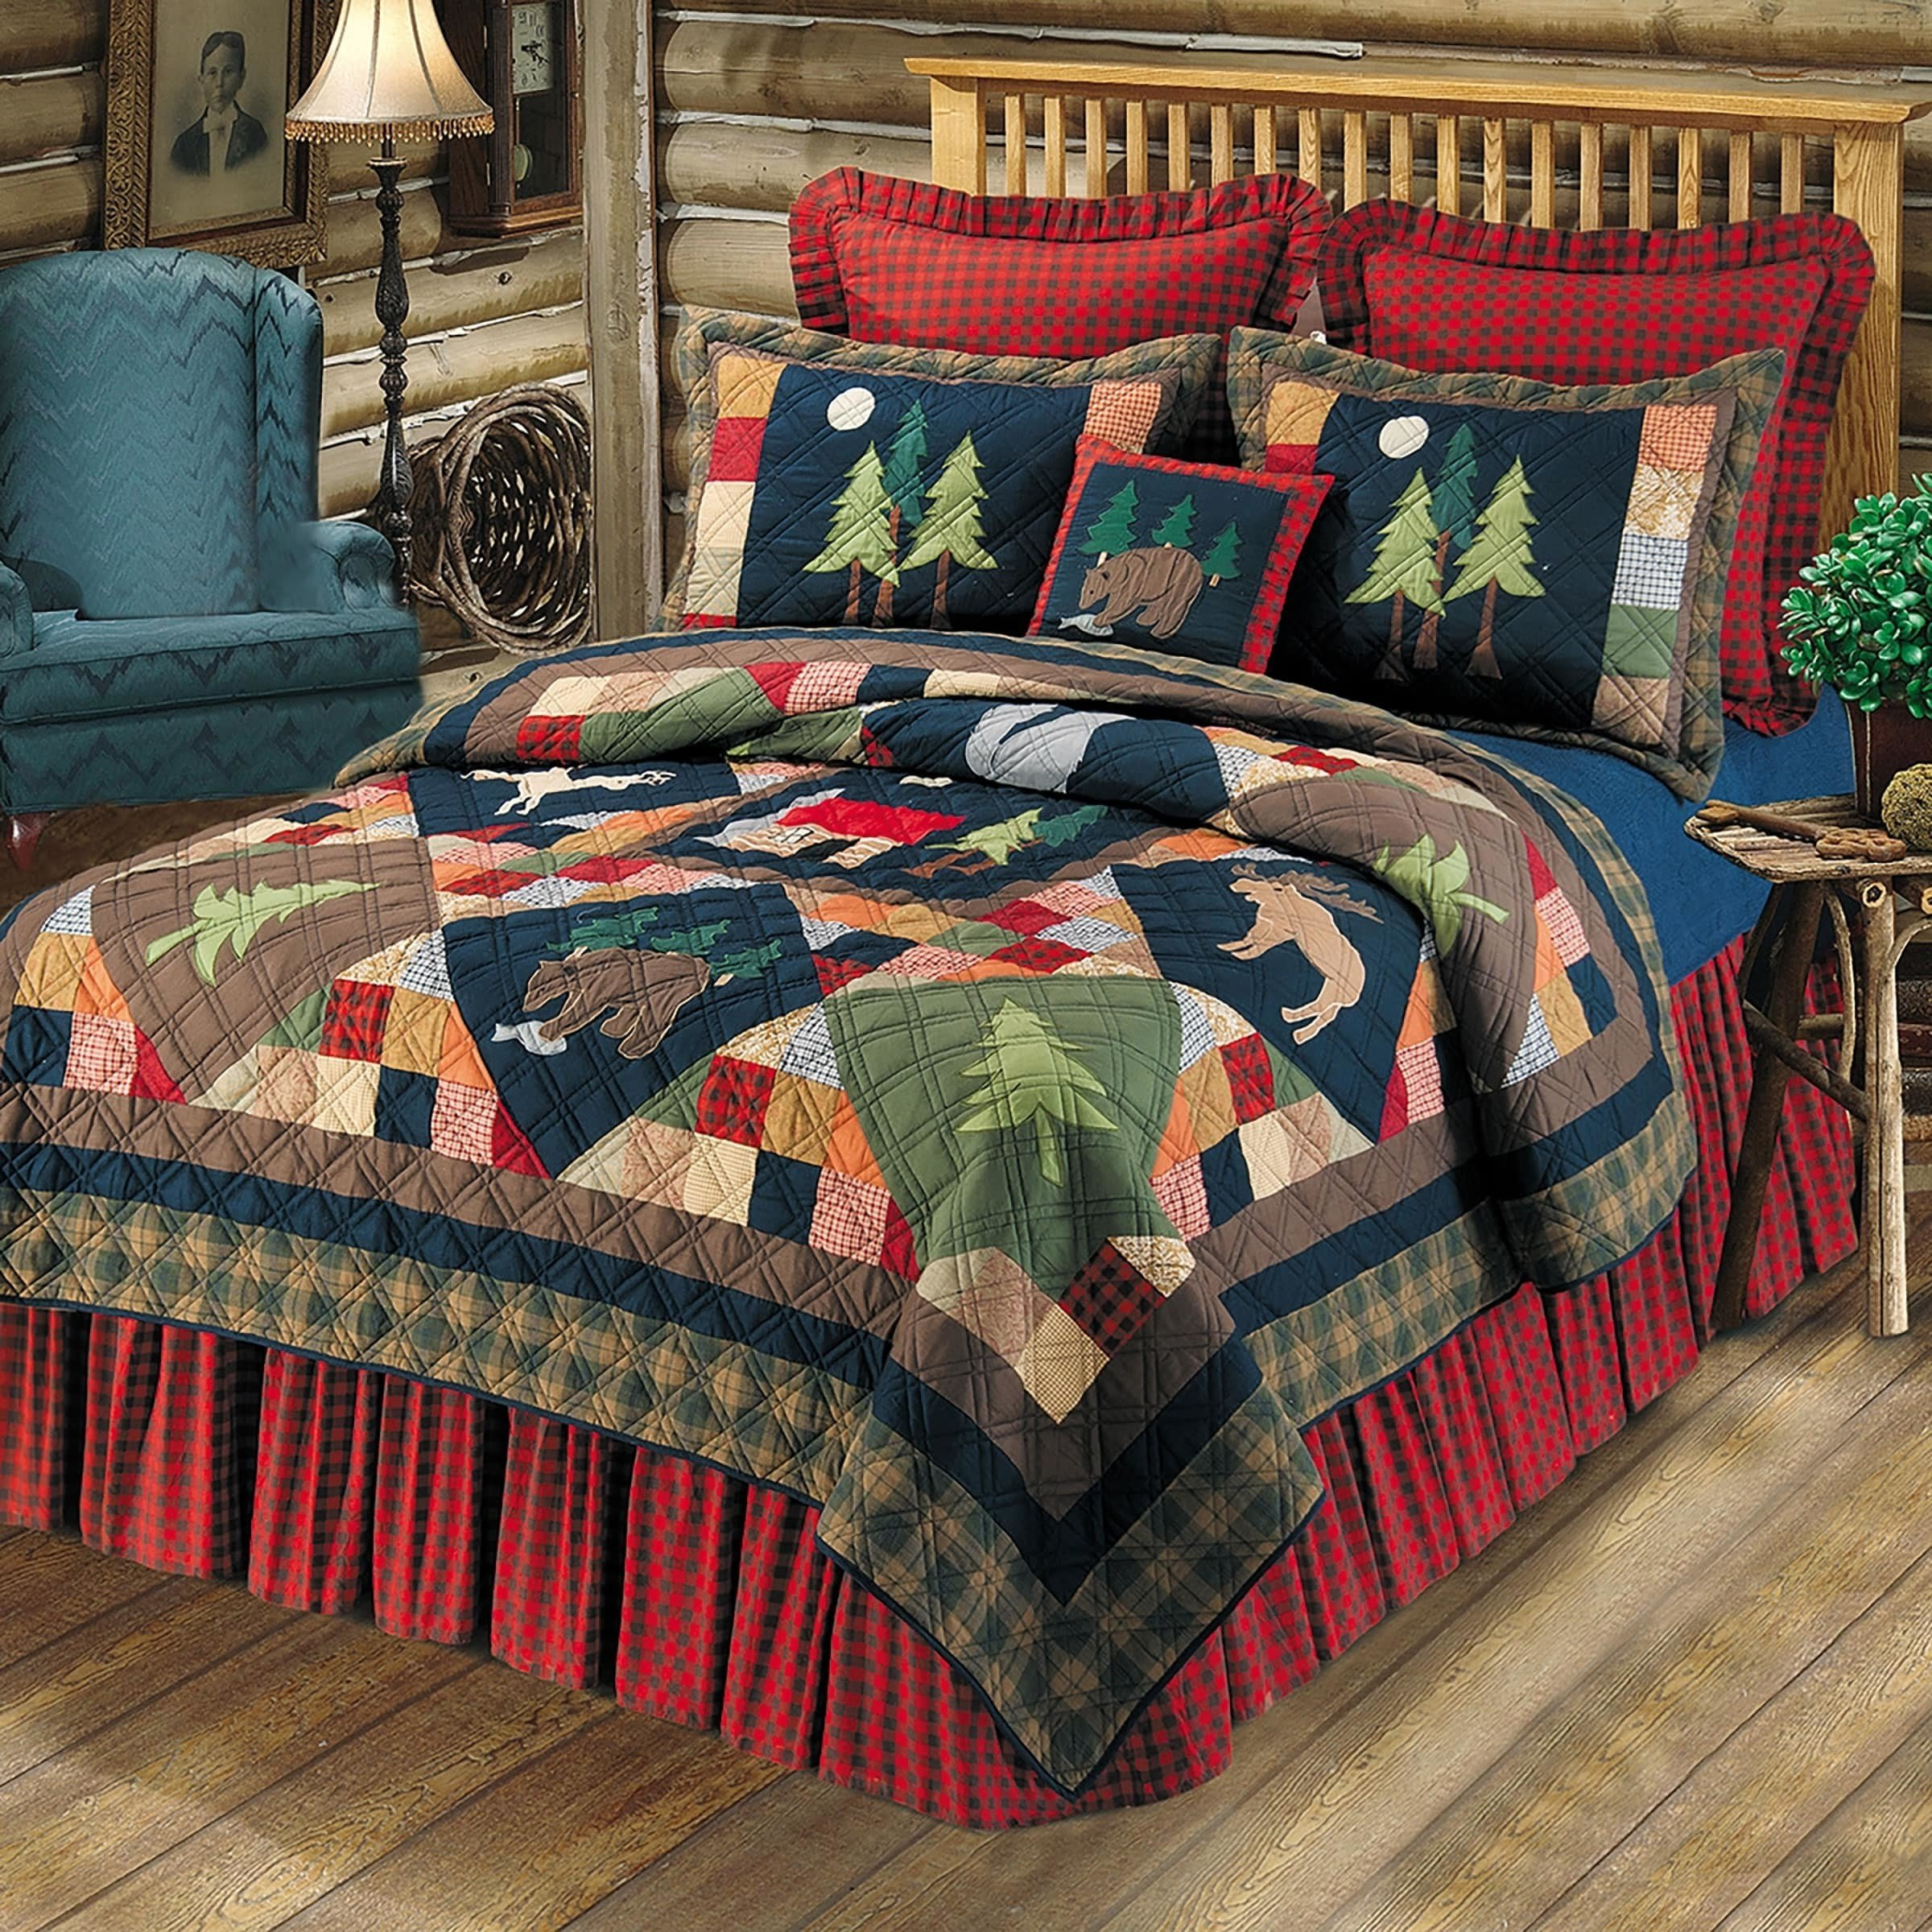 1 Piece Multi Embroidered Nature Patchwork Pattern Quilt Twin Size, Elegant Color Bock Cabin Lodge Theme, Wildlife Animals Print, Decorated Plaid Borders, Brown Navy Blue Green, Vibrant Colors, Cotton